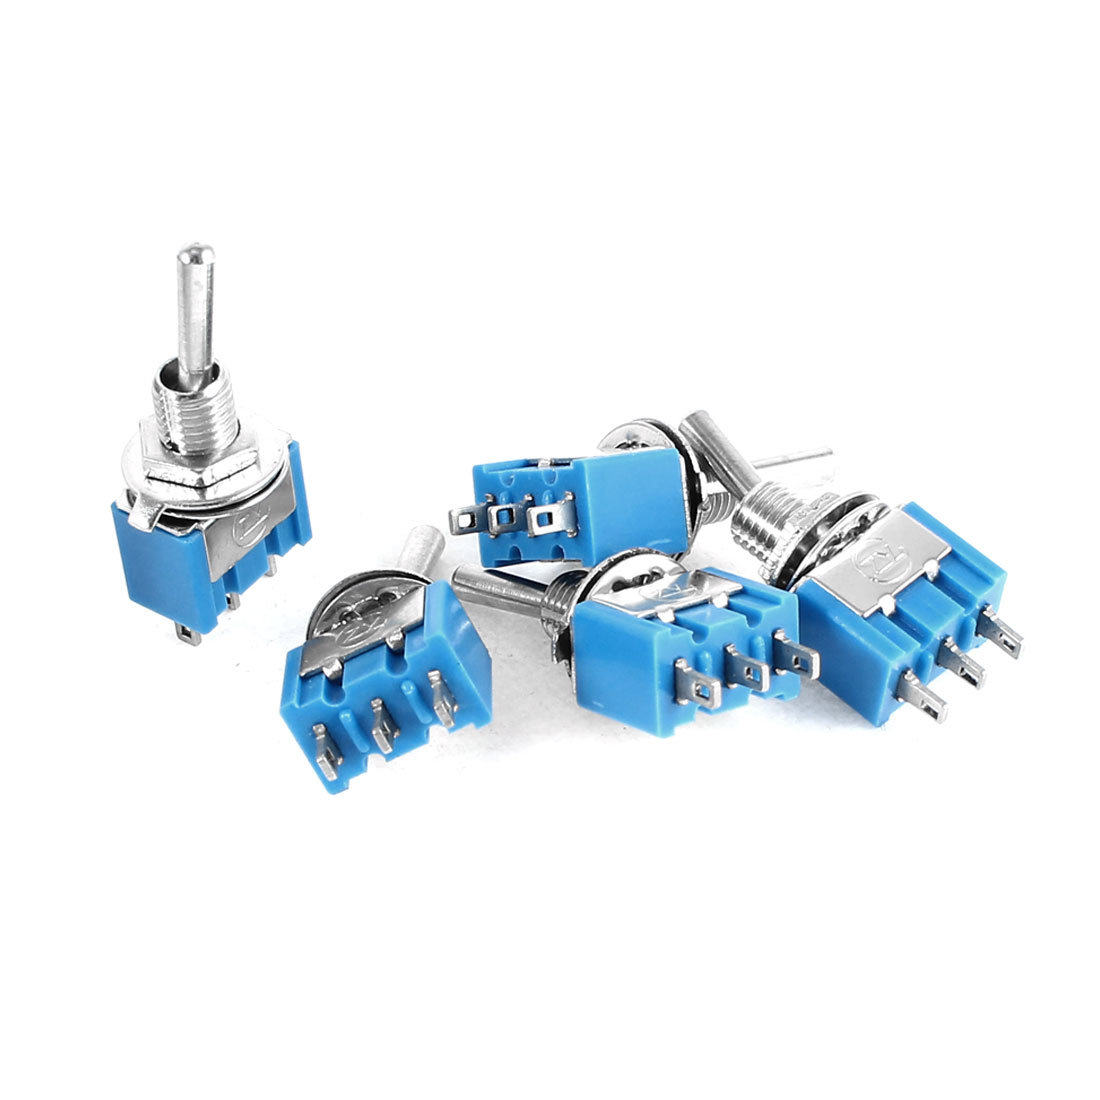 5 Pcs AC 125V 6A ON/ON 2 Position 3Pin SPDT Toggle Switch Blue